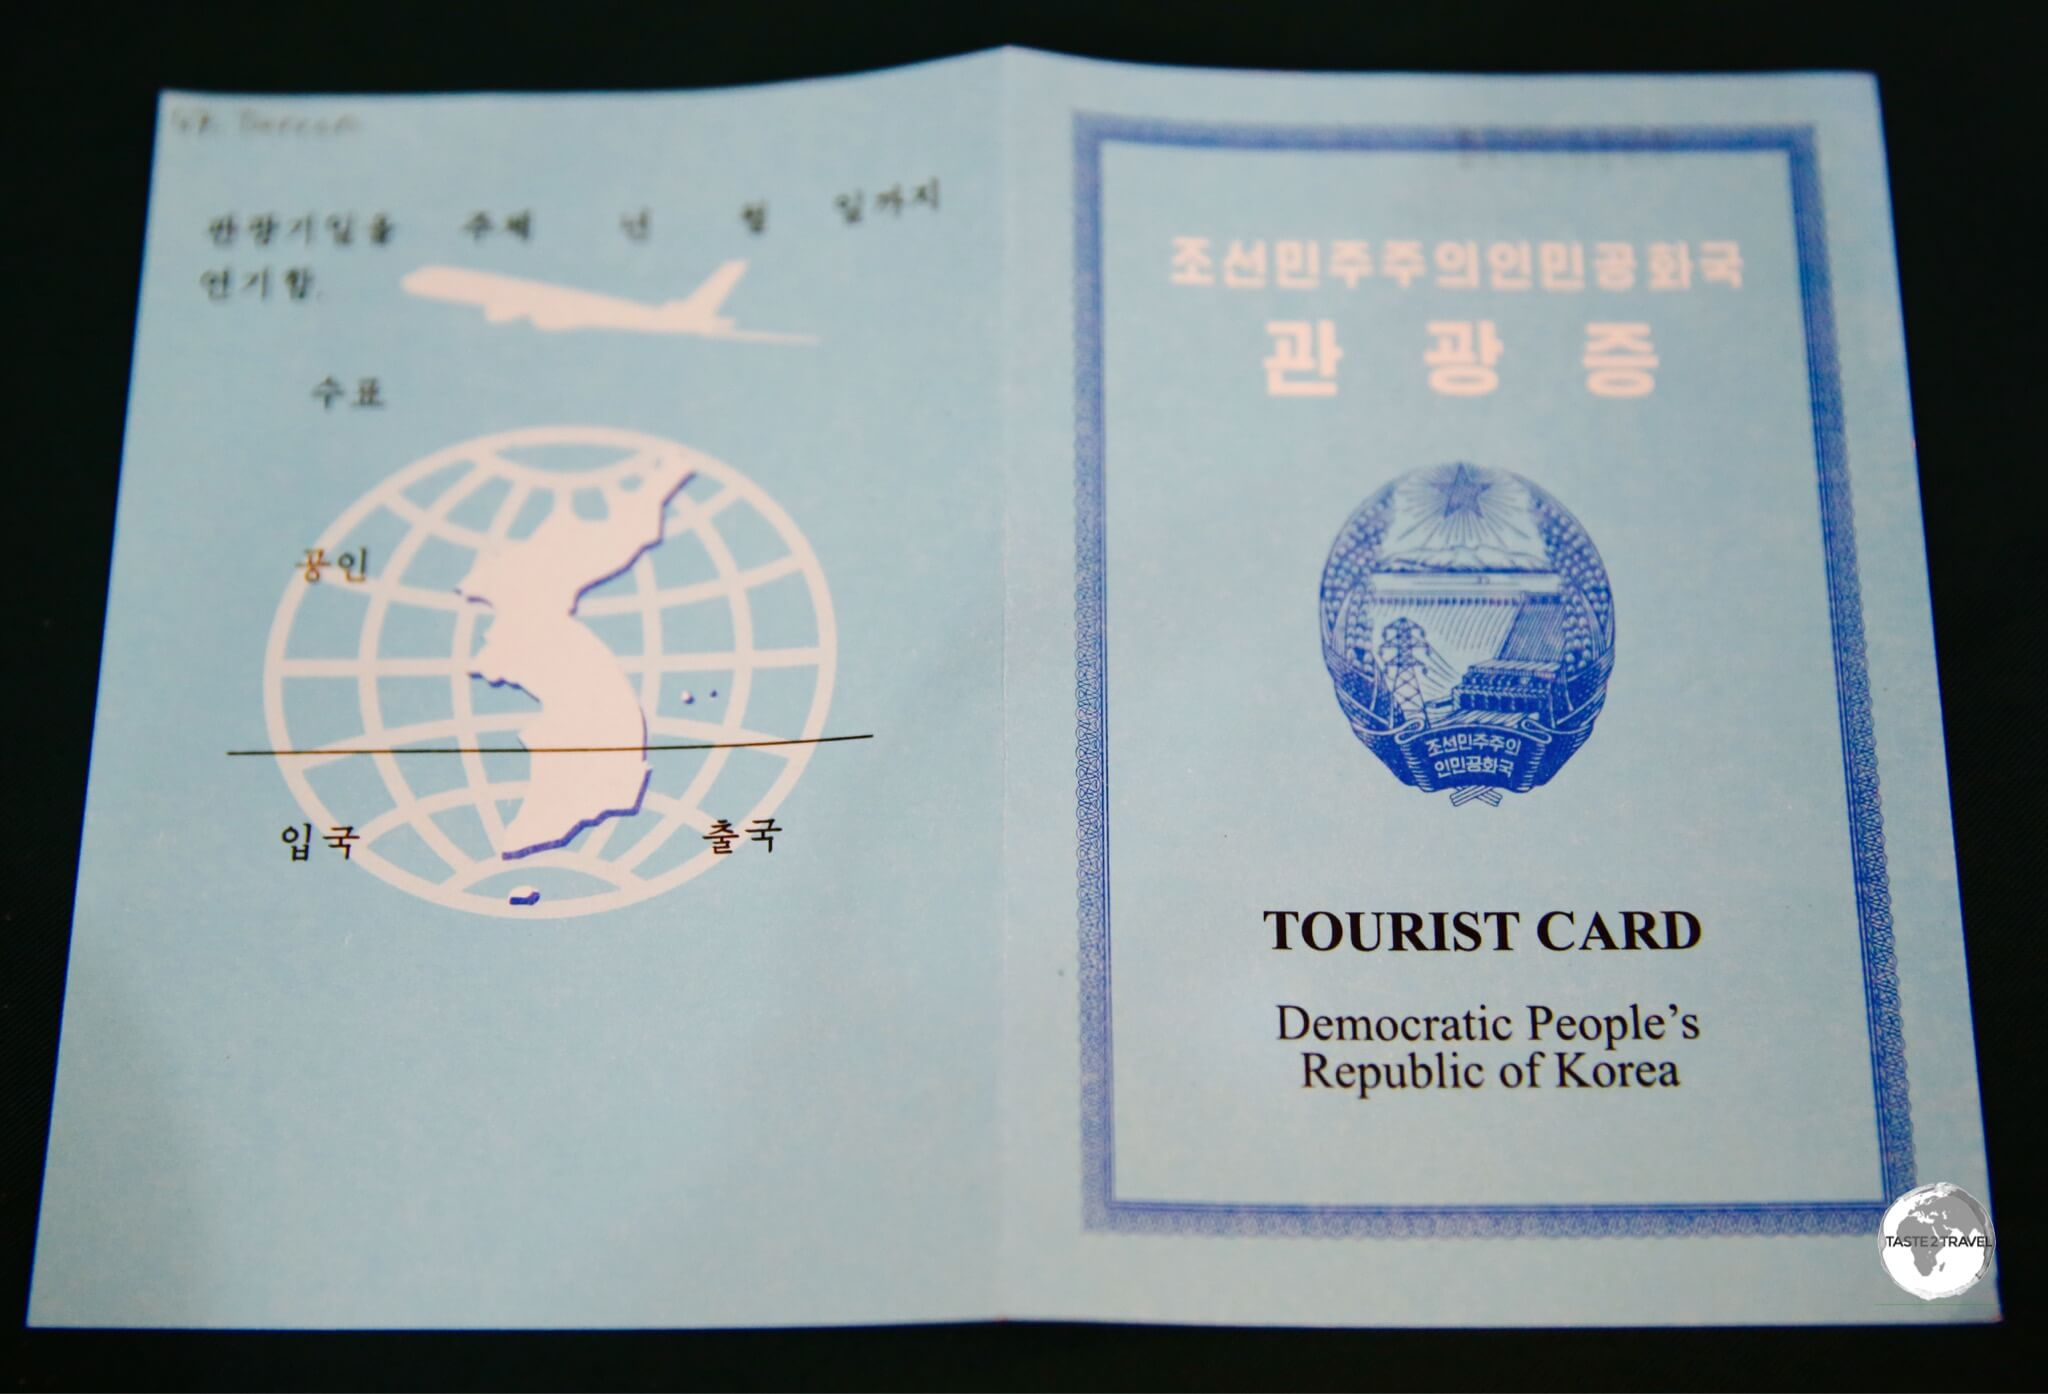 DPRK loose-leaf tourist visa. This is retained by immigration when you exit.